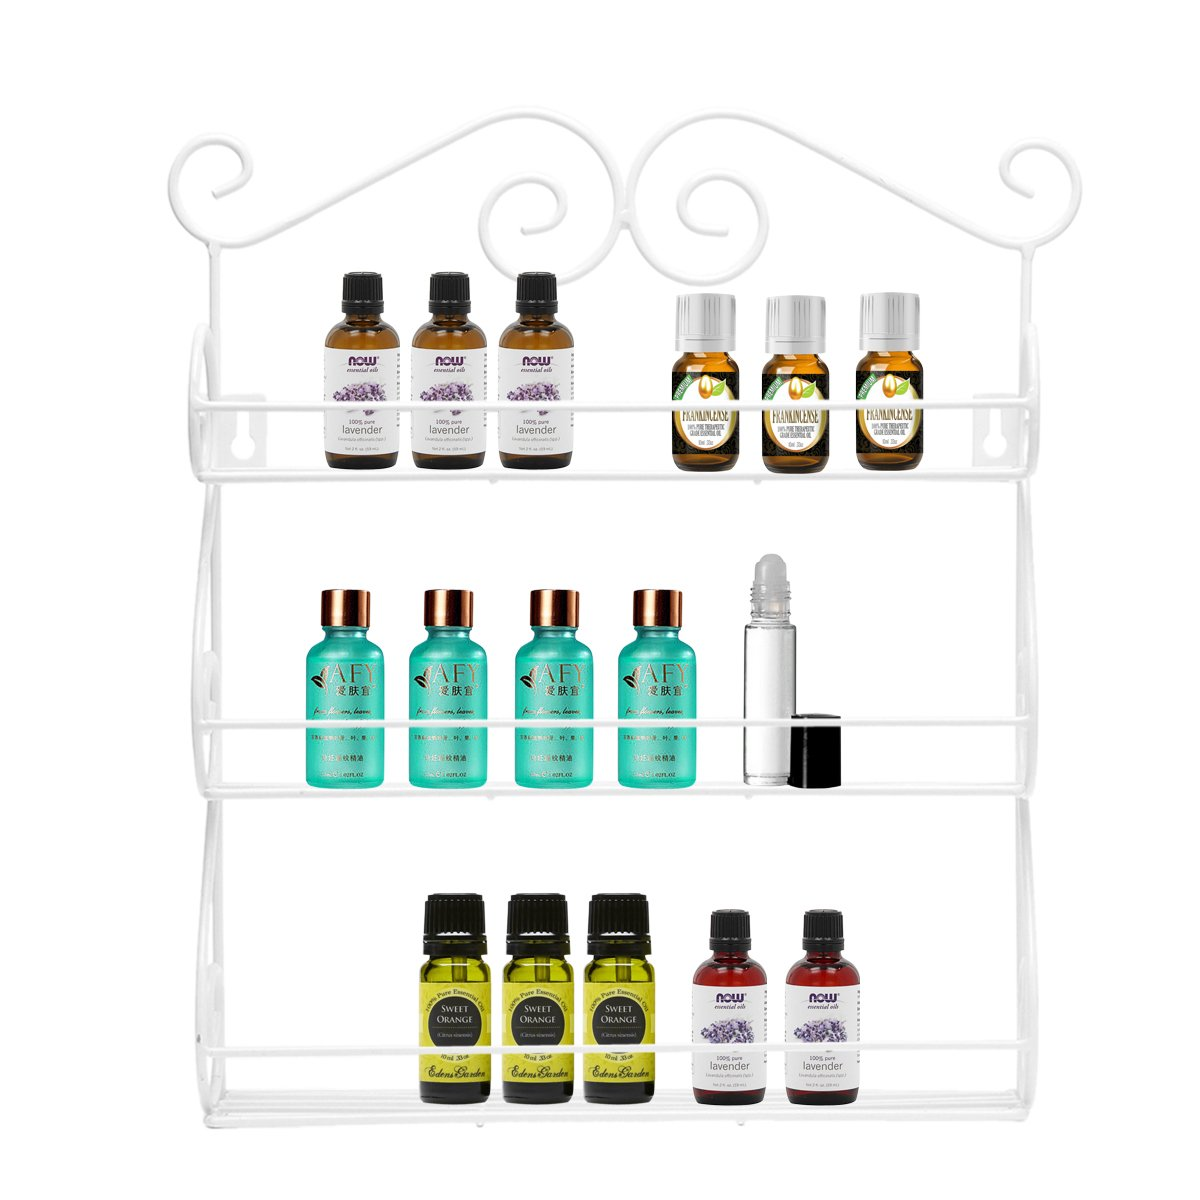 Decorative Wall Mounted 3 Tier Wall Hanging Essential Oil Organizer Nail Polish Holder Kitchen Spice Rack